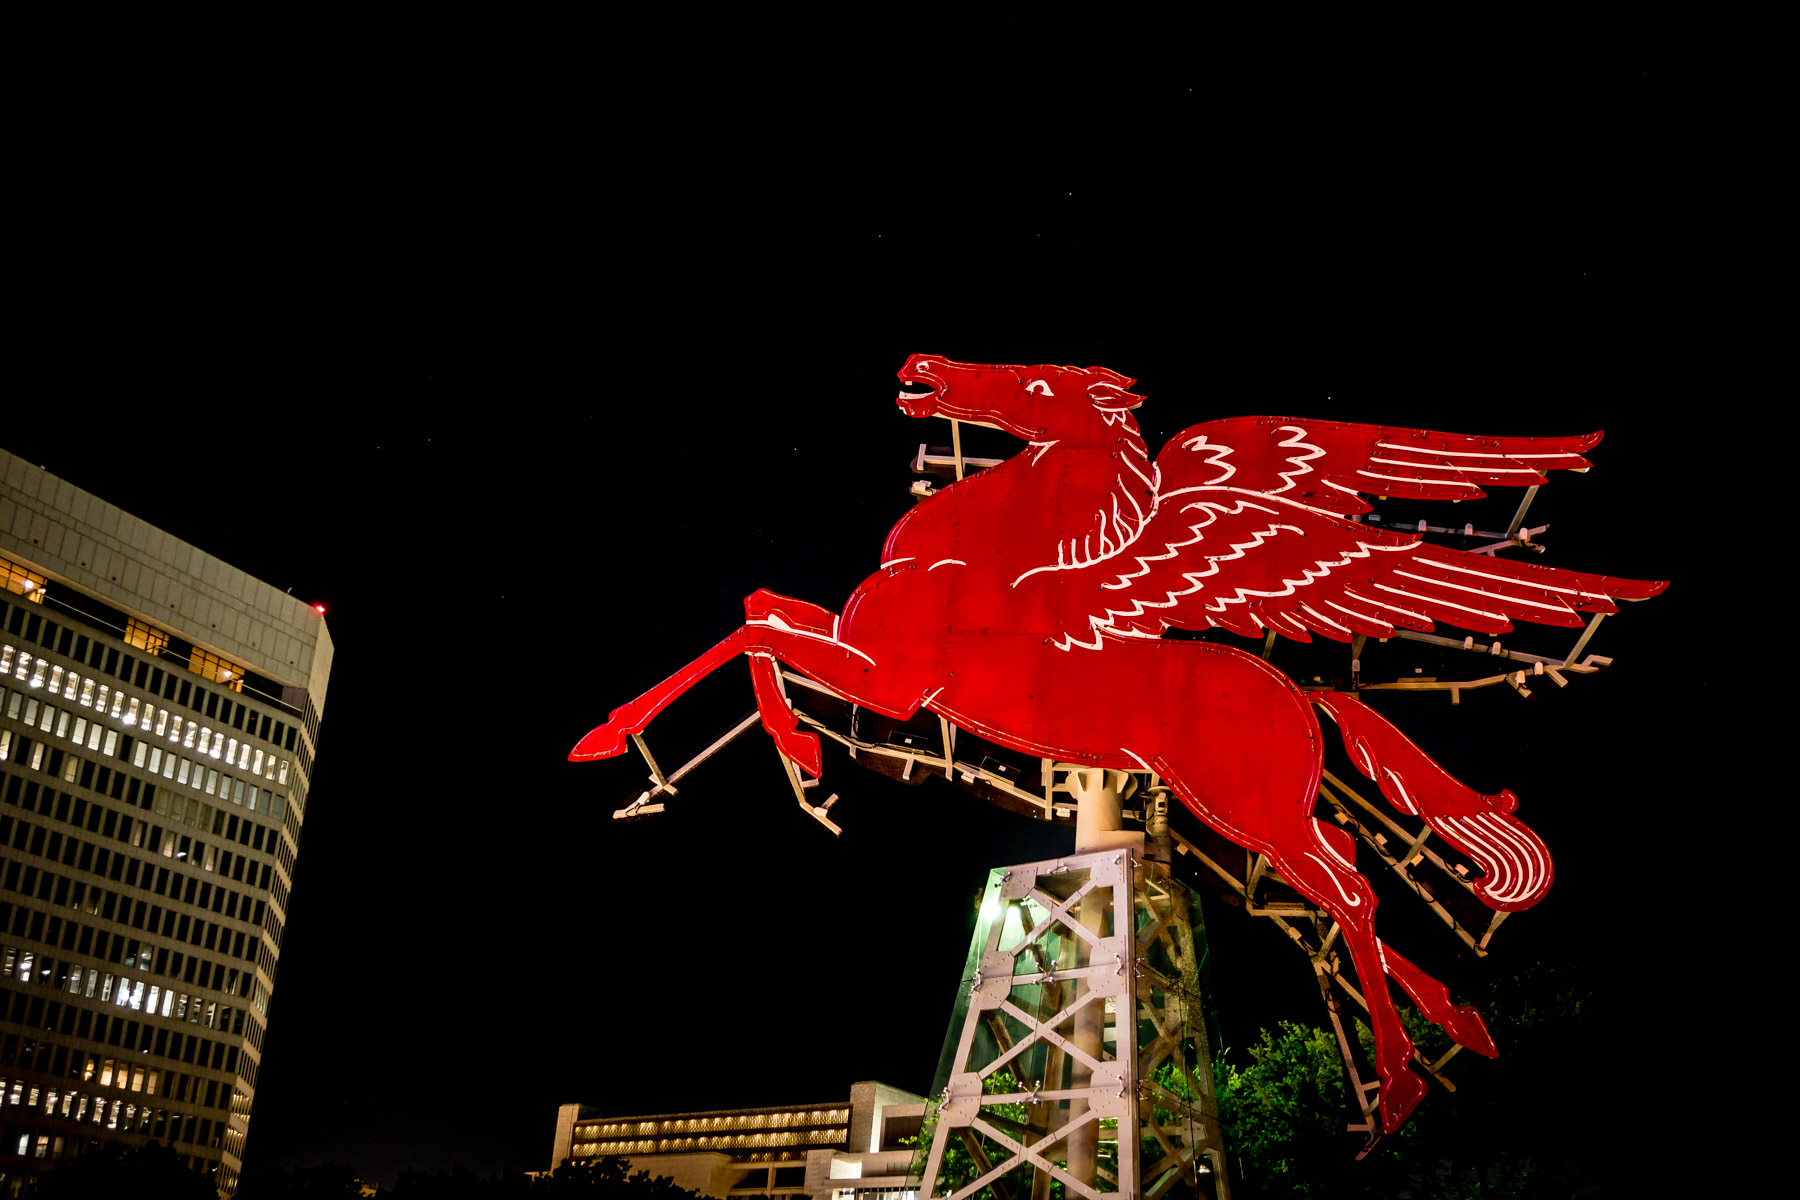 Recently-restored, this iconic red pegasus originally stood atop Dallas' Magnolia Petroleum Building. Erected in 1934, it became a symbol of the city until it was replaced by a reproduction in 1999. This original is now located at the Omni Dallas Hotel.